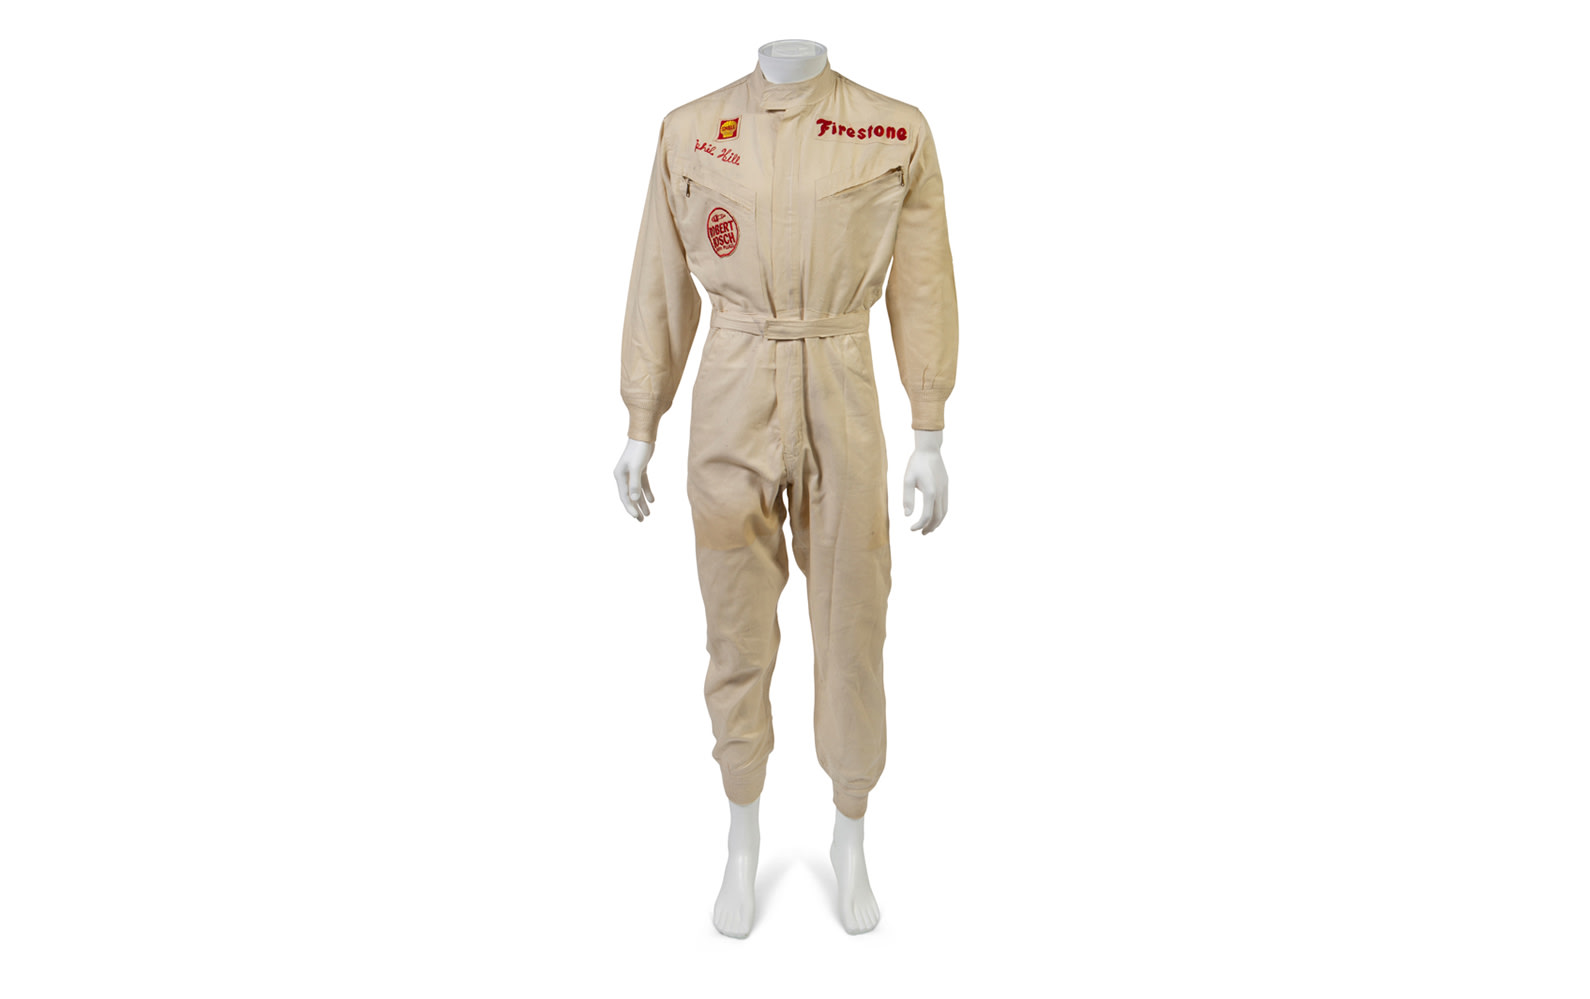 Phil Hill's 1967 1000 Km Spa-Francorchamps Driver Armband and One-Piece Hinchman Racing Suit